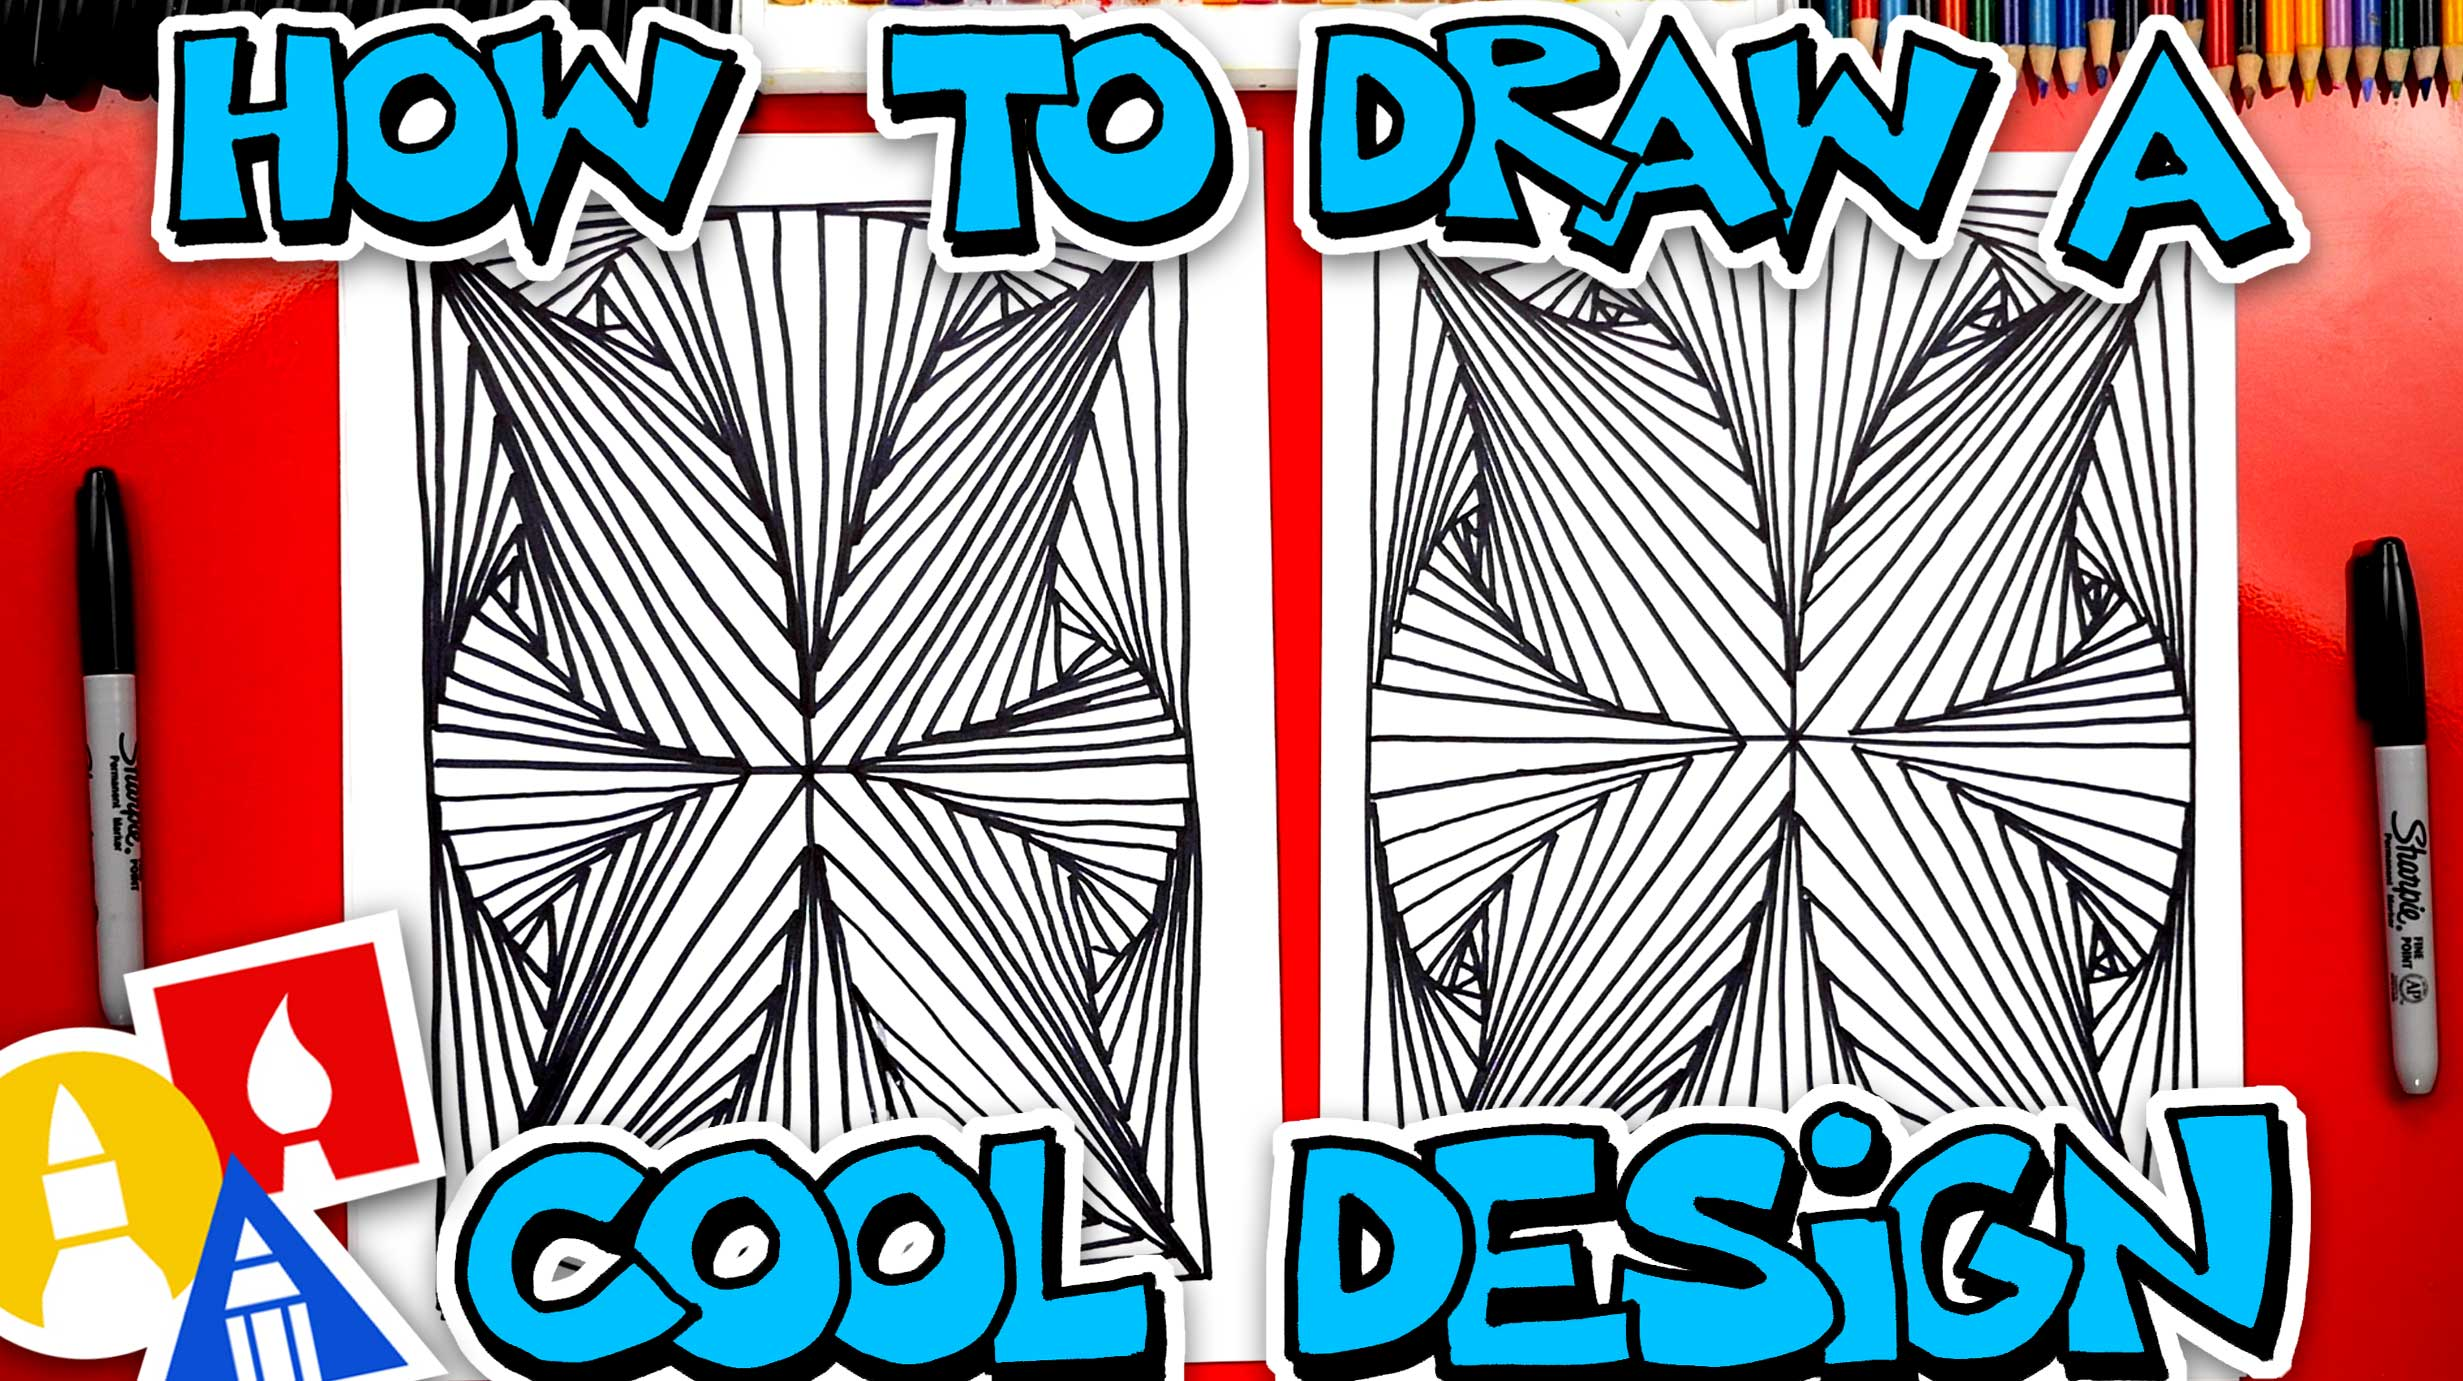 How To Draw A 3D Abstract Design - Art For Kids Hub